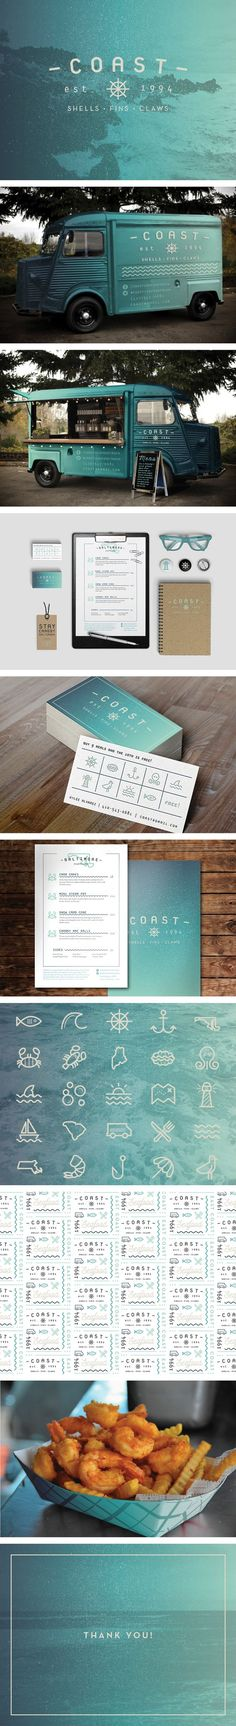 Coast Food Truck Branding on Behance | Fivestar Branding – Design and Branding…